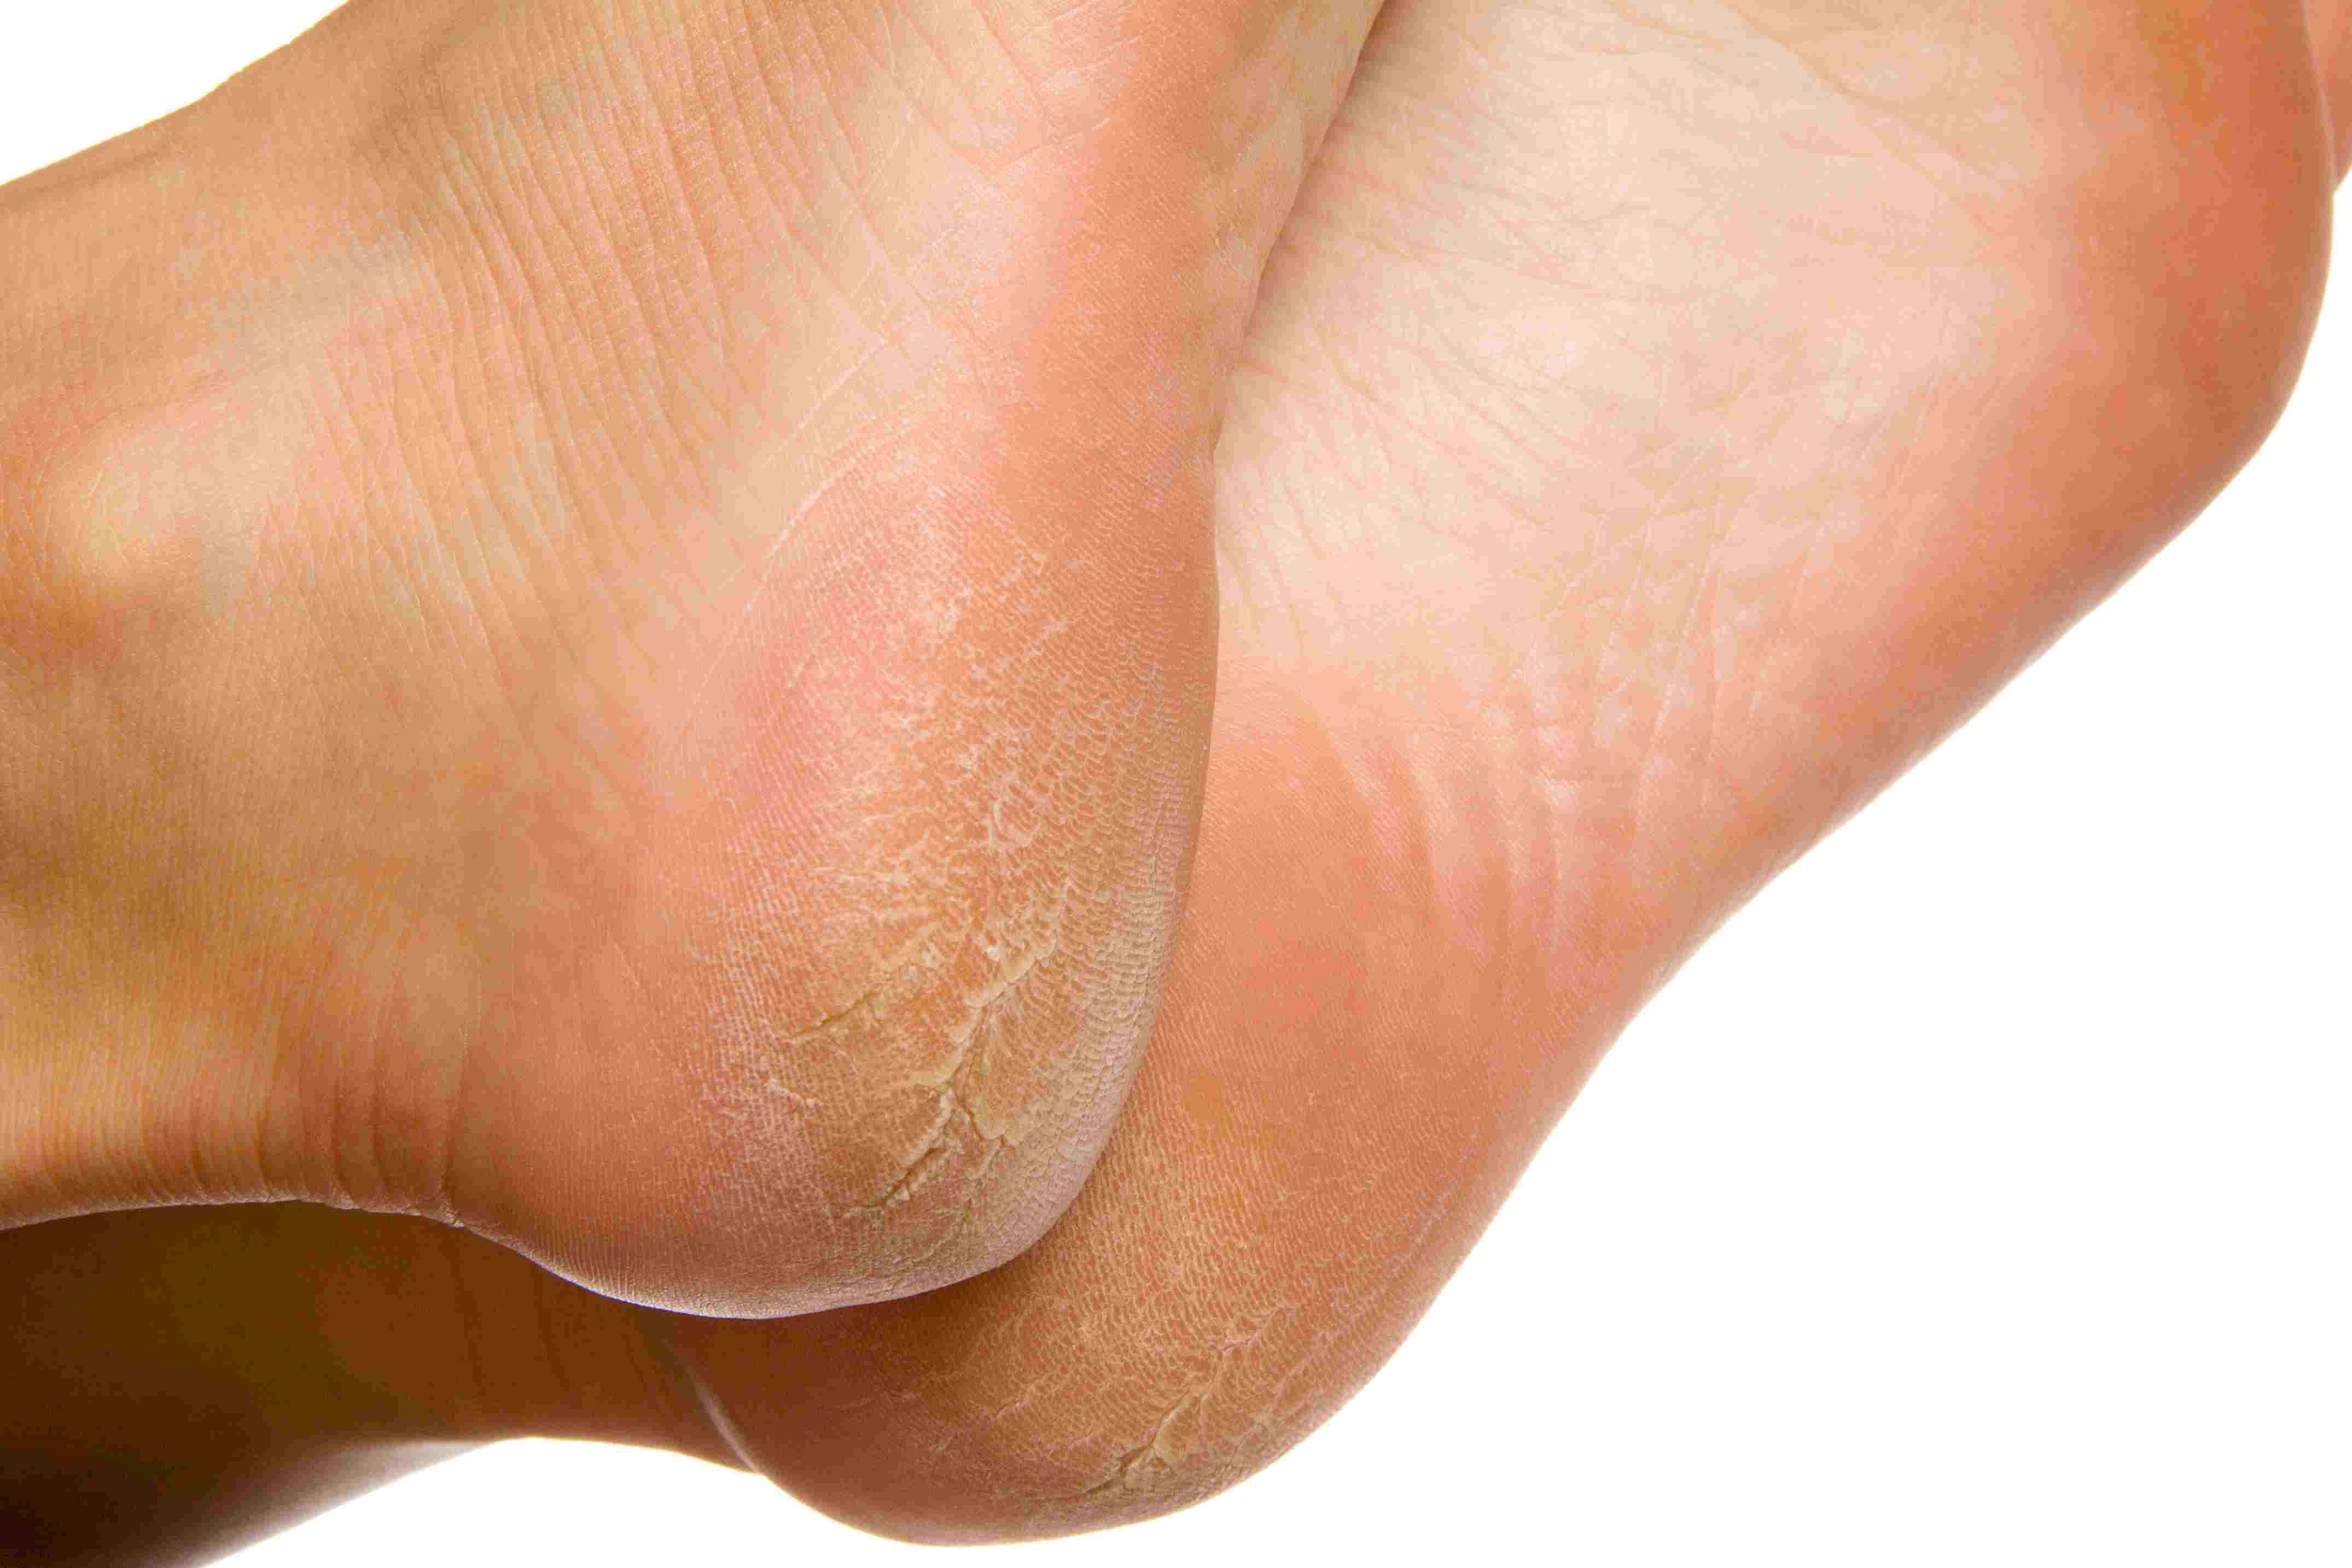 Warts in foot sole - transroute.ro